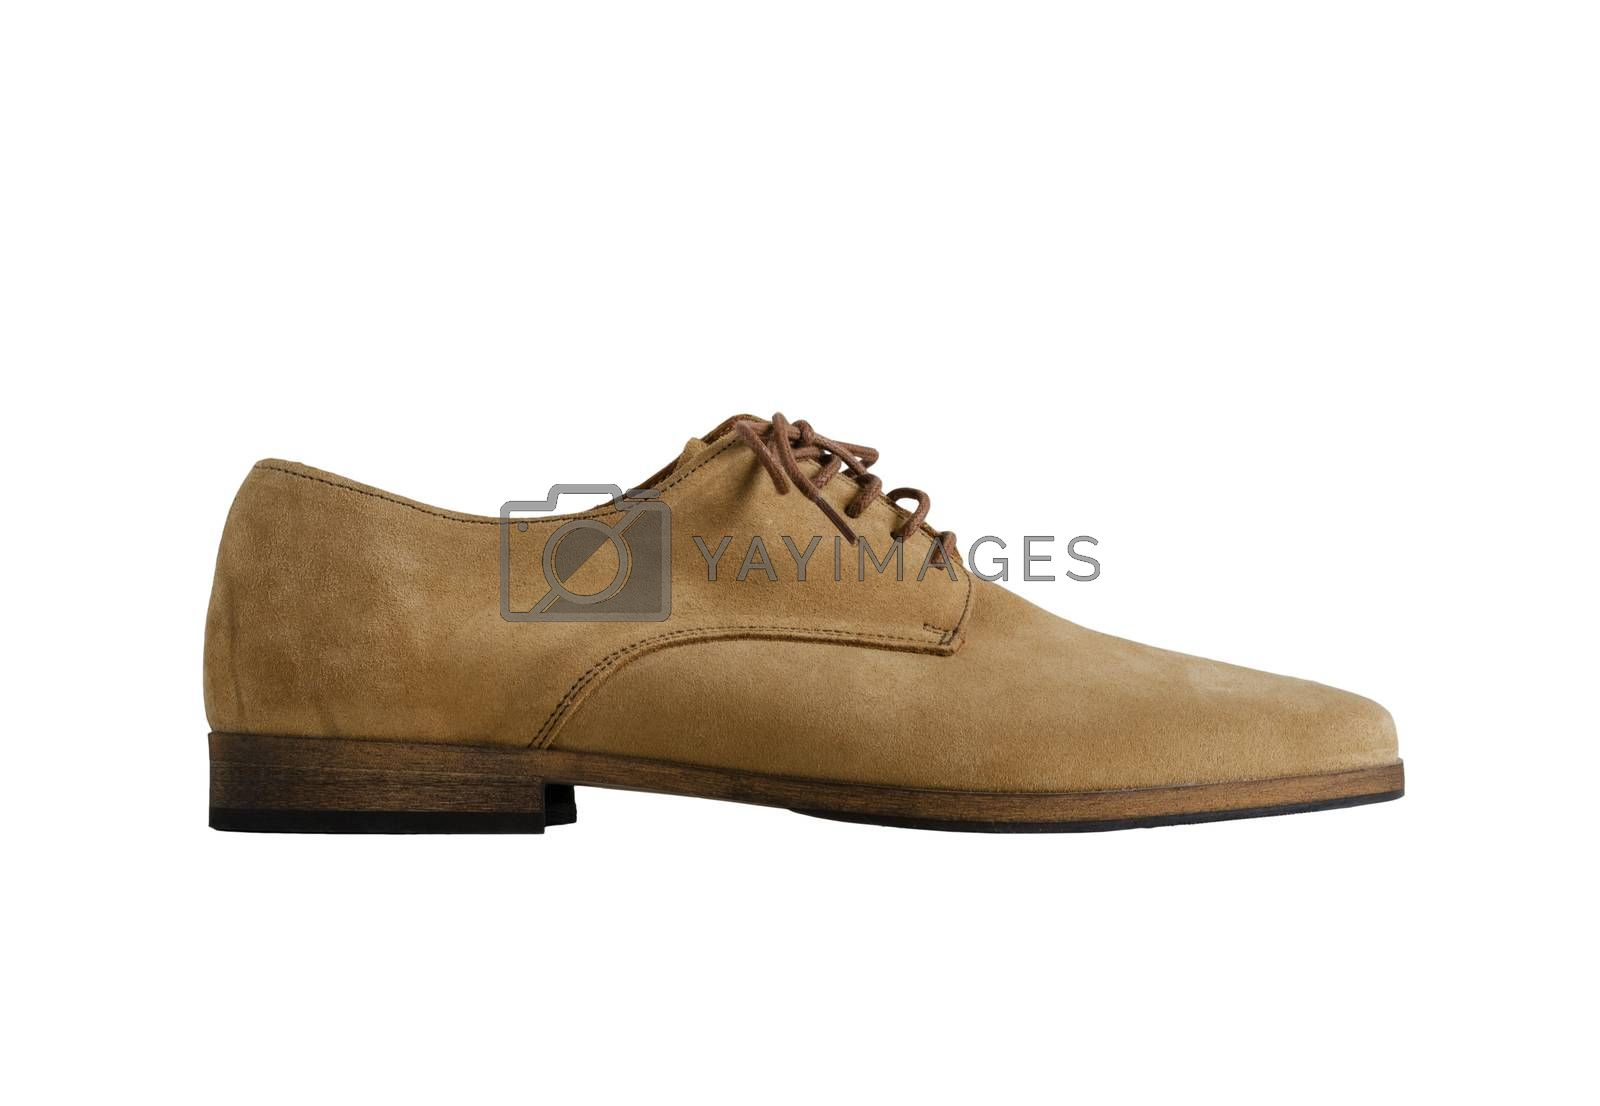 Royalty free image of Brown Man Suede Leather Shoes isolated on white by siraanamwong